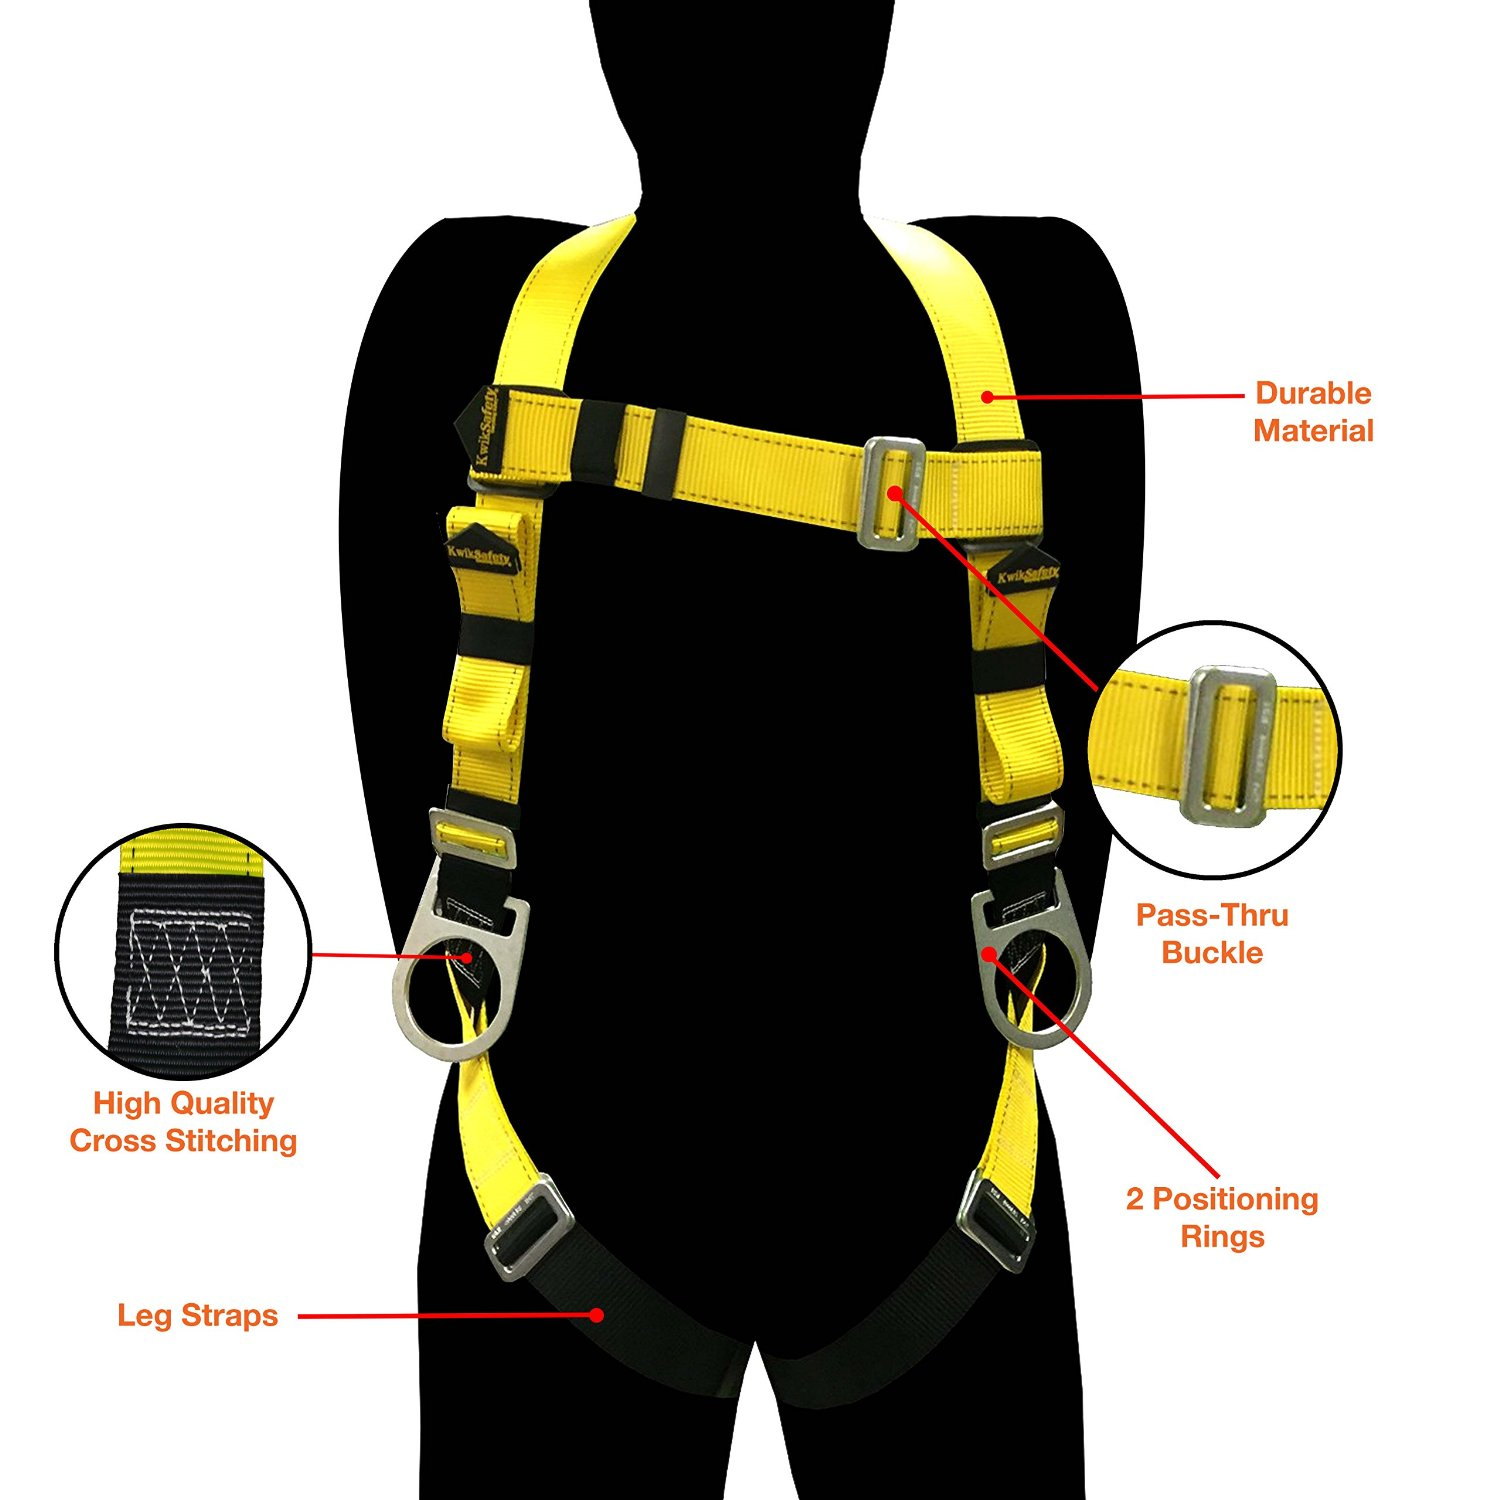 loose ring fall protection harness best site wiring harness